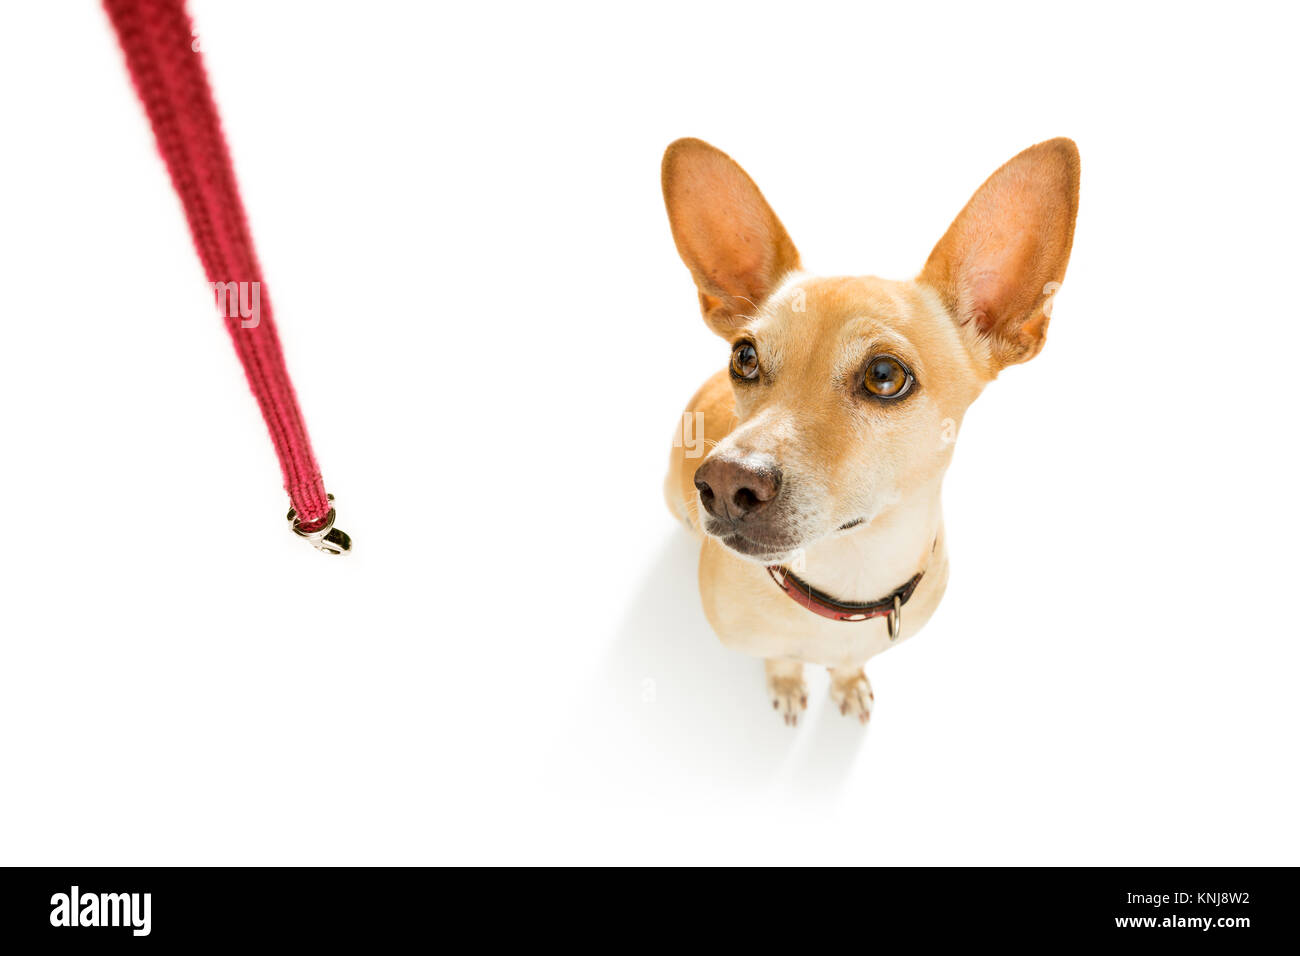 chihuahua podenco dog waiting for owner to play  and go for a walk with leash outdoors - Stock Image